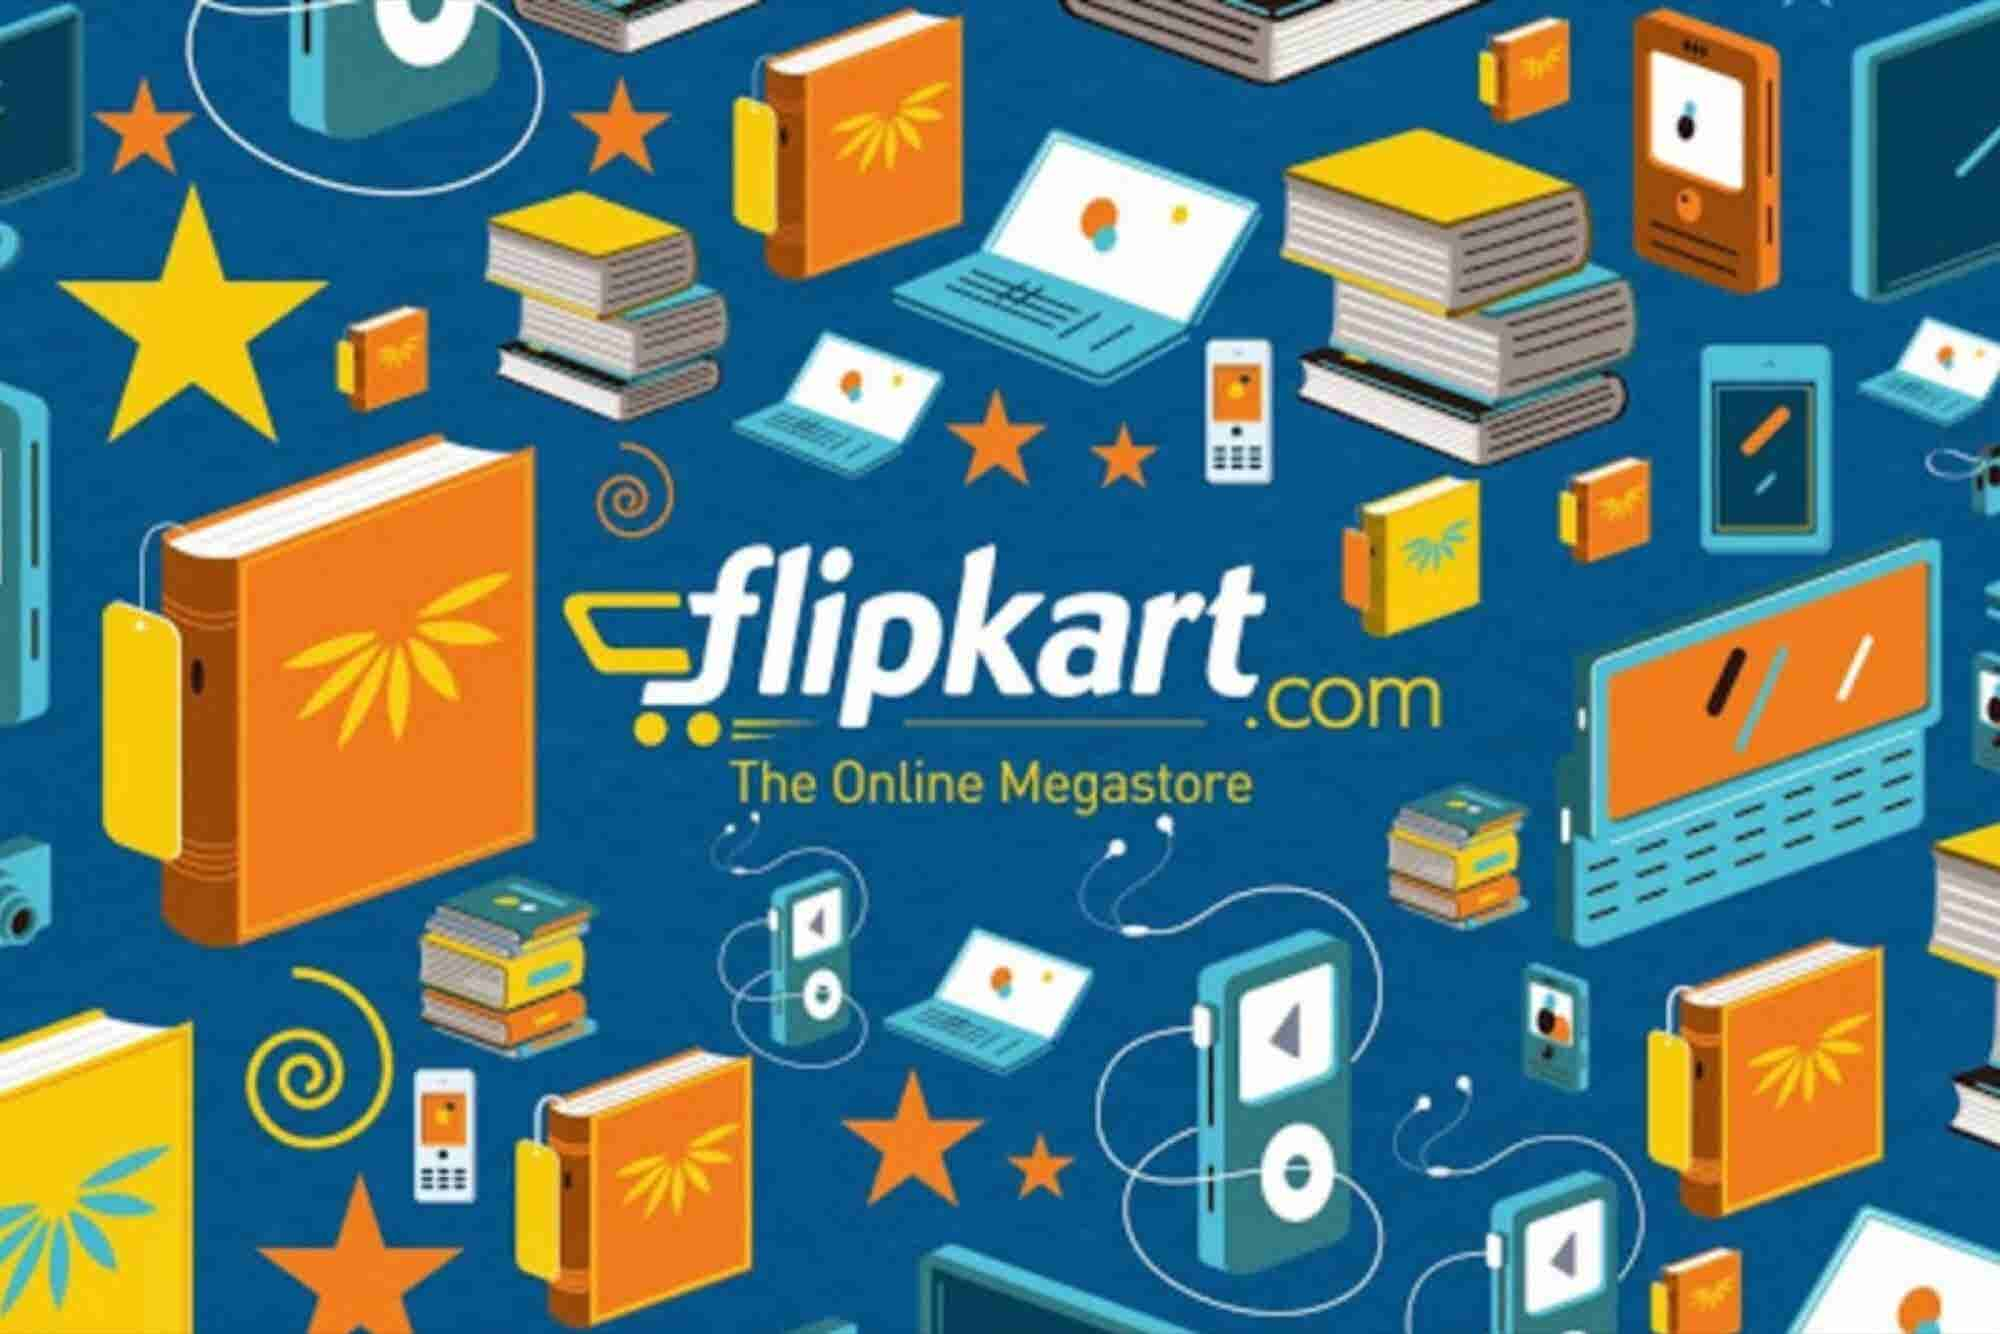 Marked Down Again, Is Flipkart Losing Ground To Amazon?